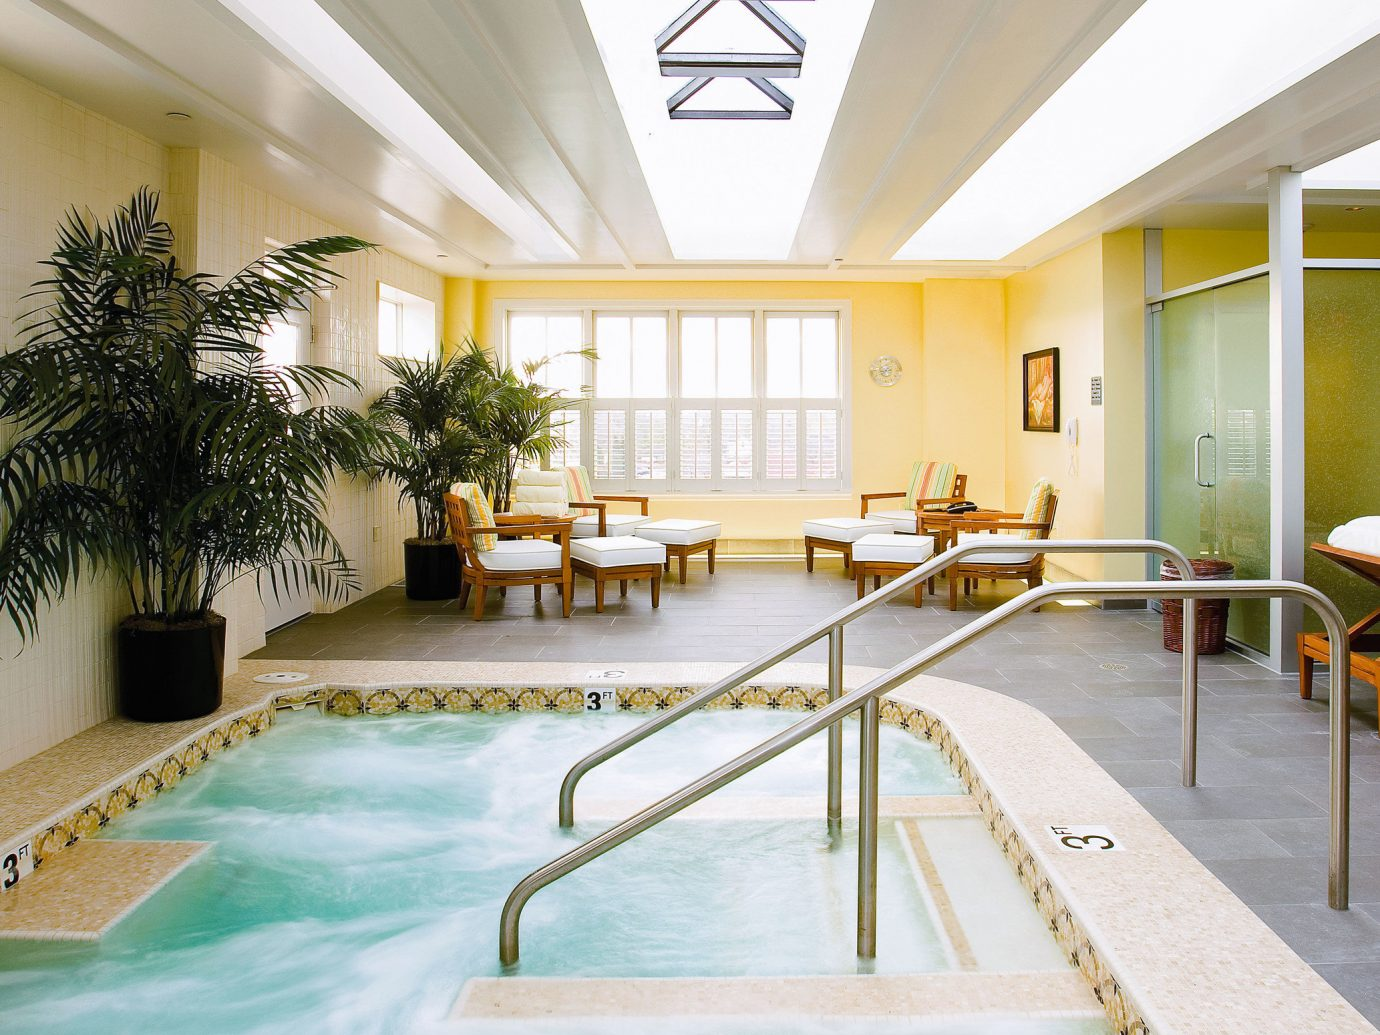 indoor swimming pool building leisure estate interior design real estate leisure centre condominium yellow ceiling home Resort hotel daylighting floor apartment amenity decorated furniture